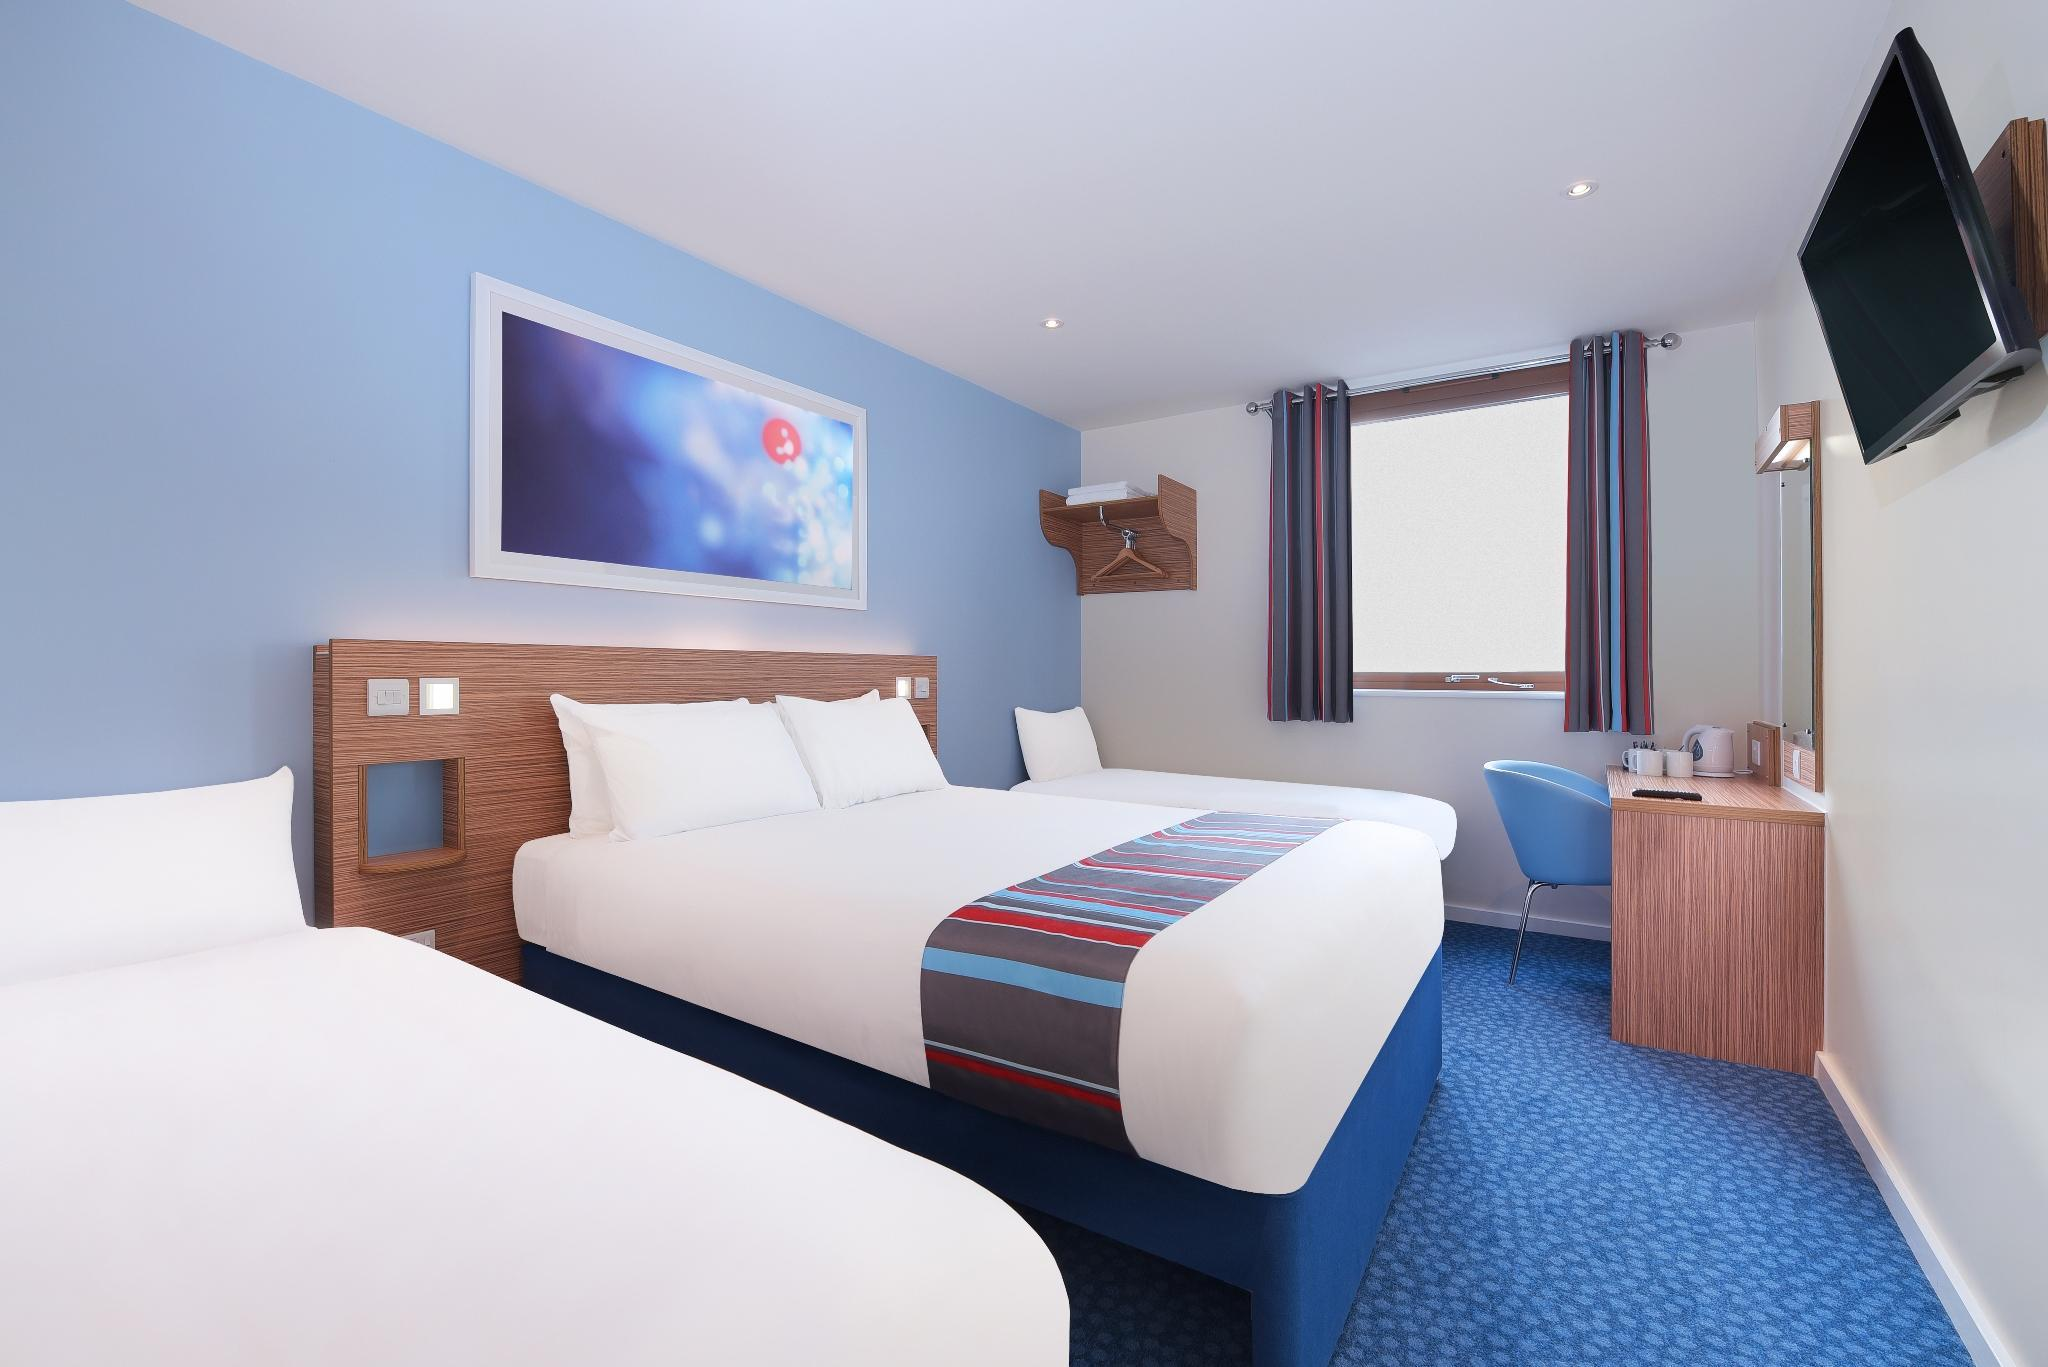 Travelodge Blackpool South Shore, Blackpool